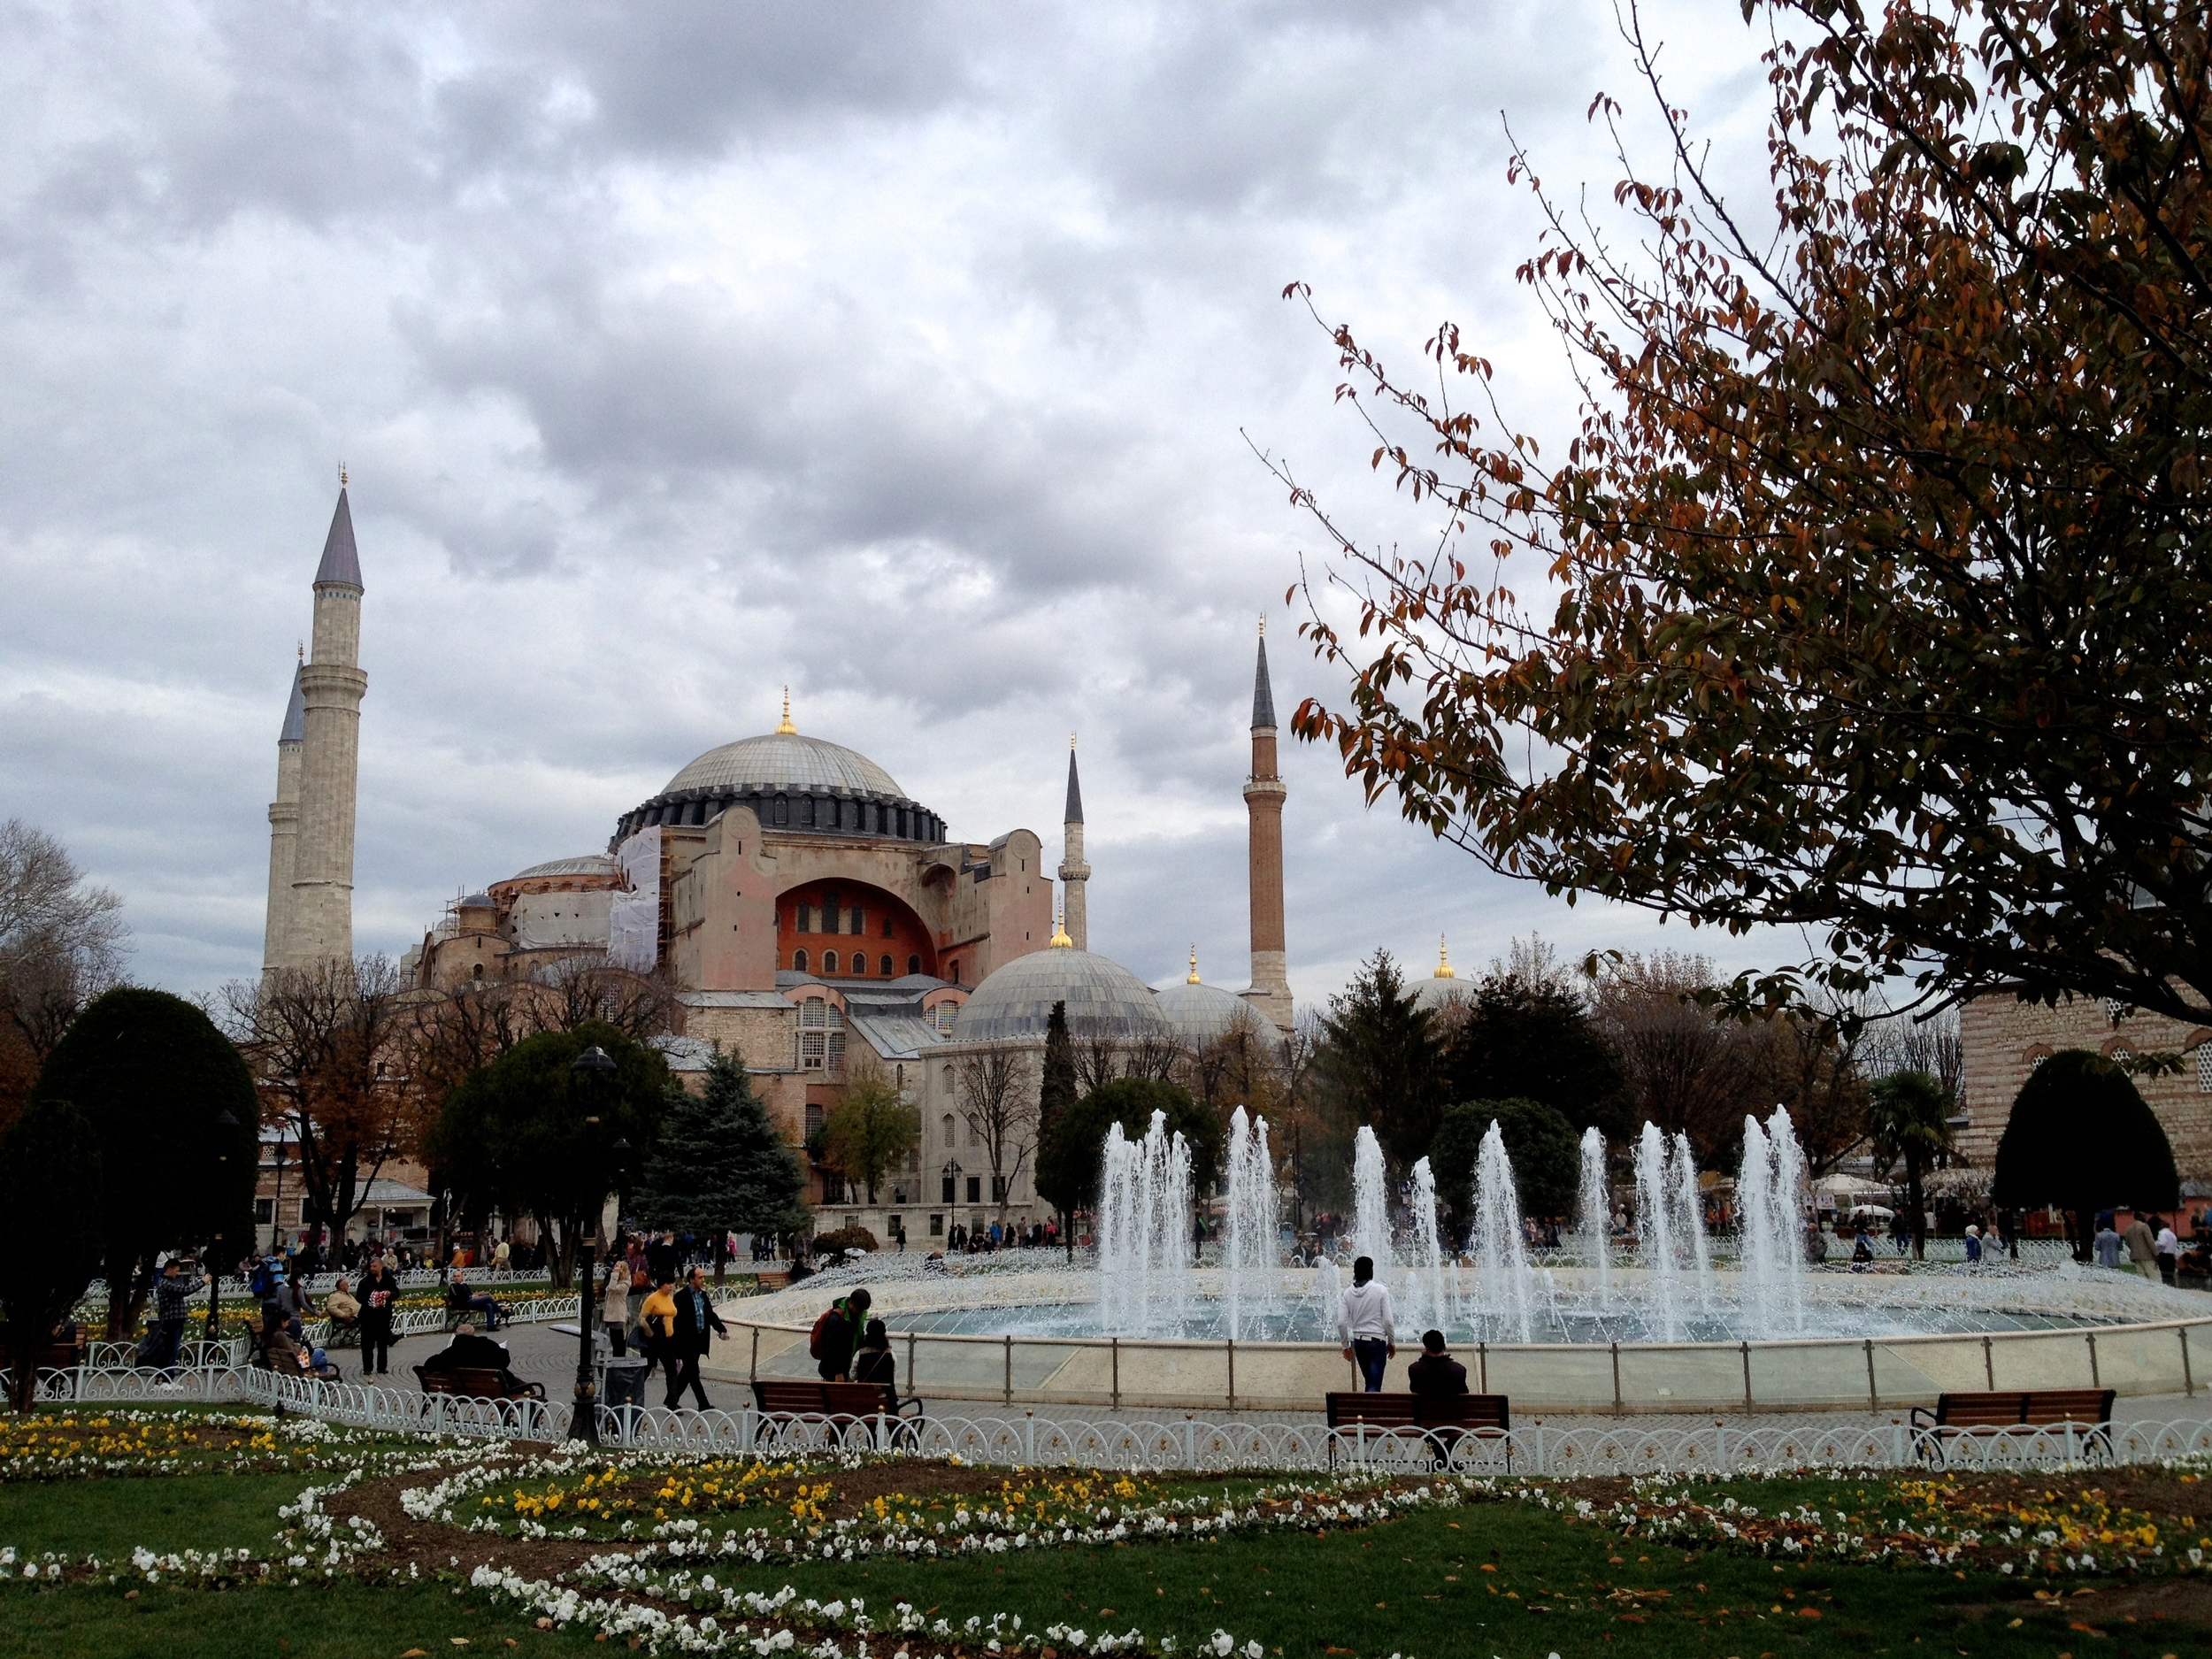 Constantinople. Not Istanbul.